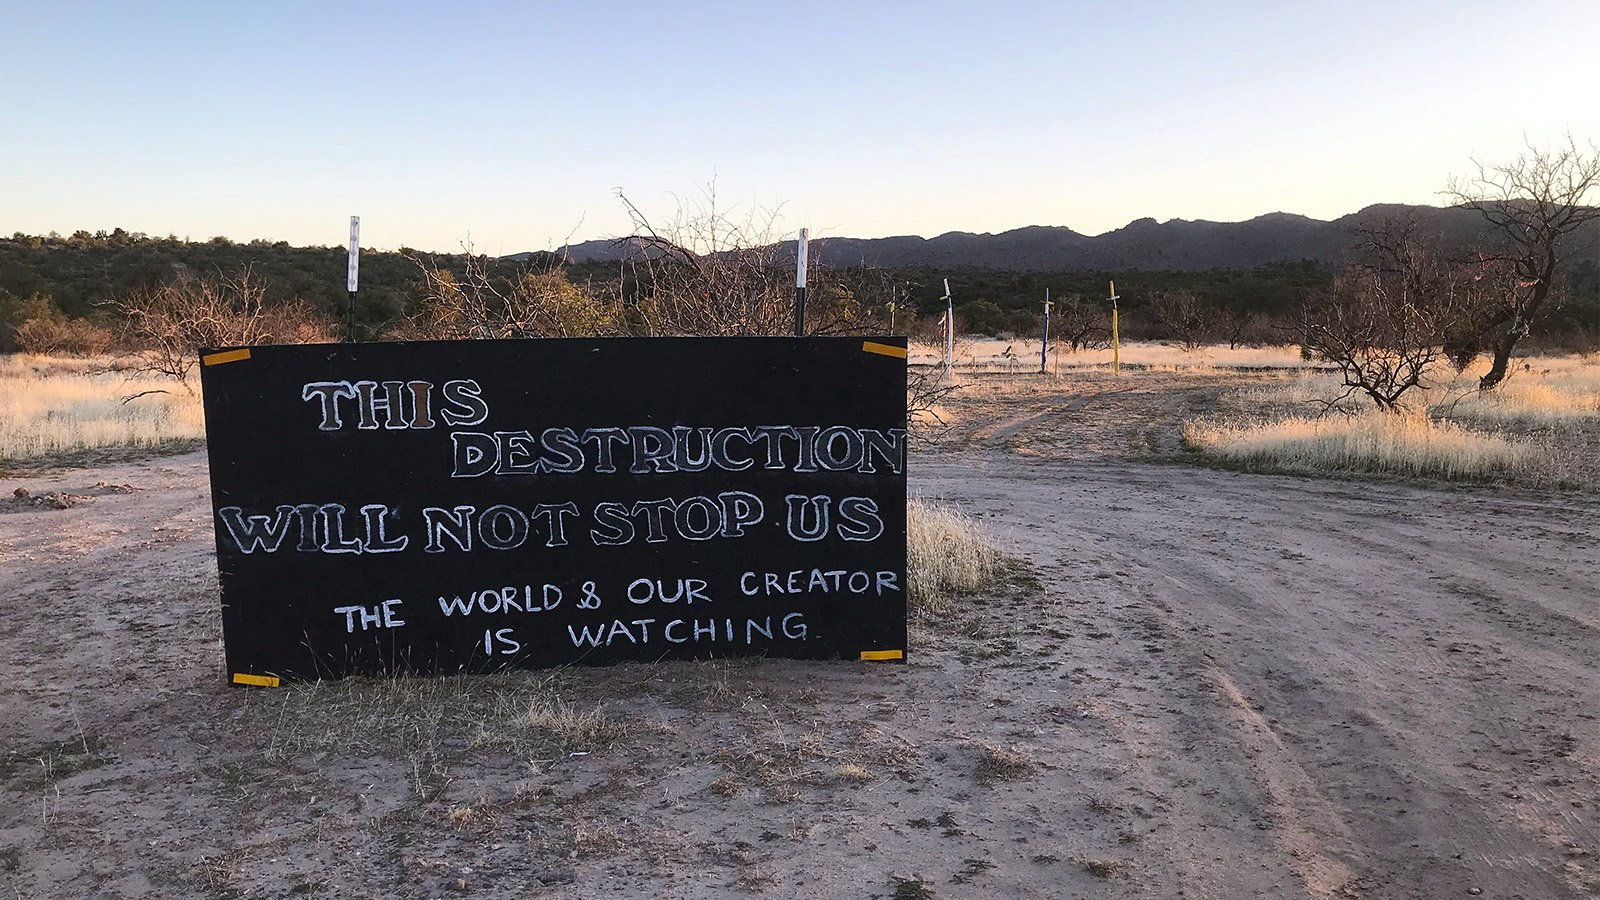 Signs protesting the transfer of Oak Flat stand just outside the Oak Flat campground in Arizona's Tonto National Forest, roughly 70 miles east of Phoenix. RNS photo by Alejandra Molina